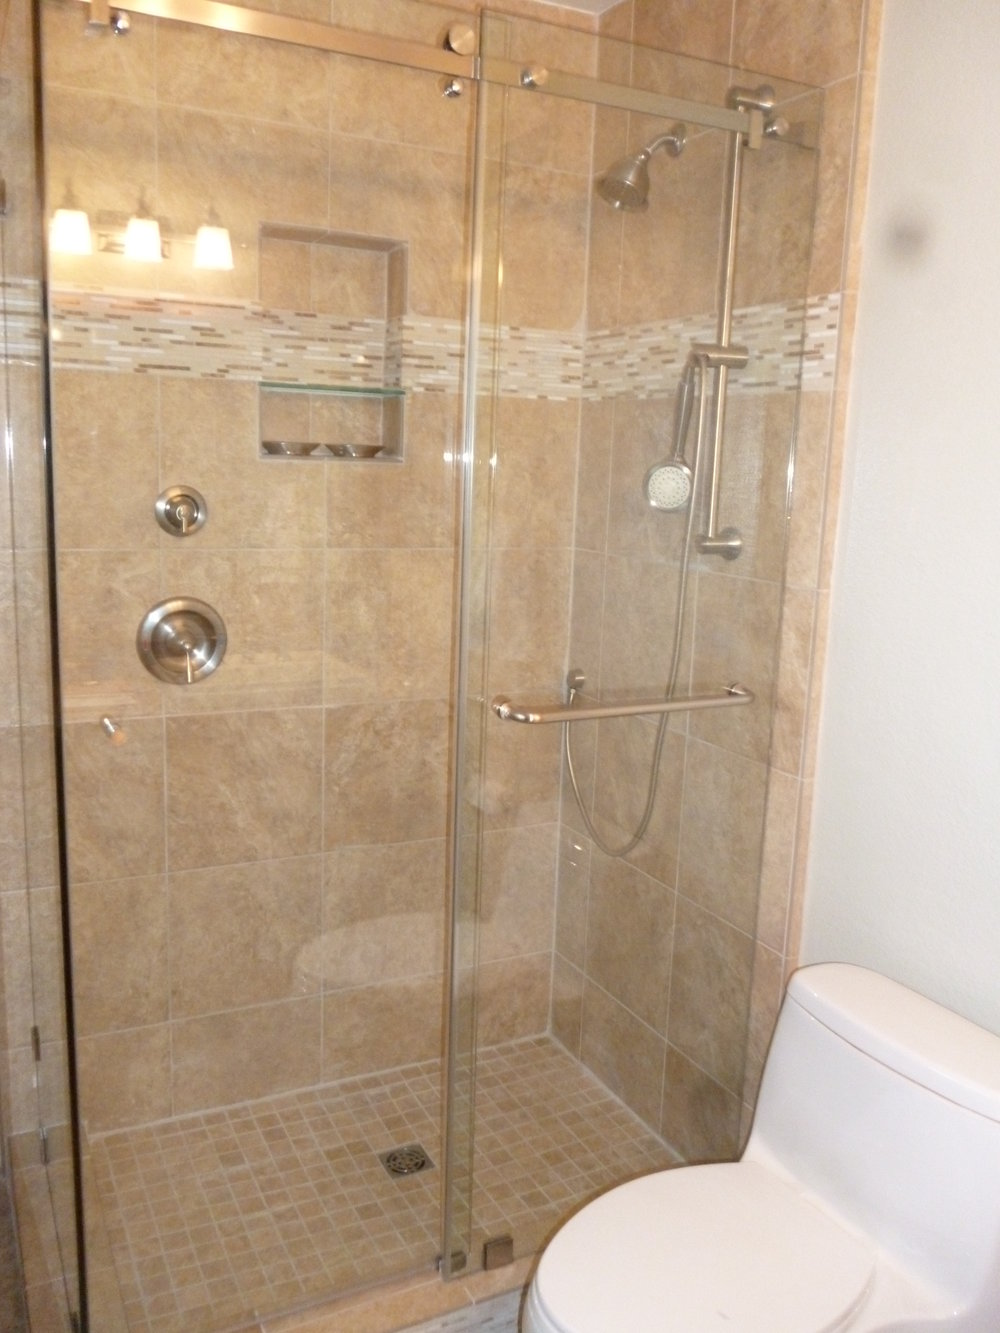 Shower-Doors-Residential-Photos-19.jpg